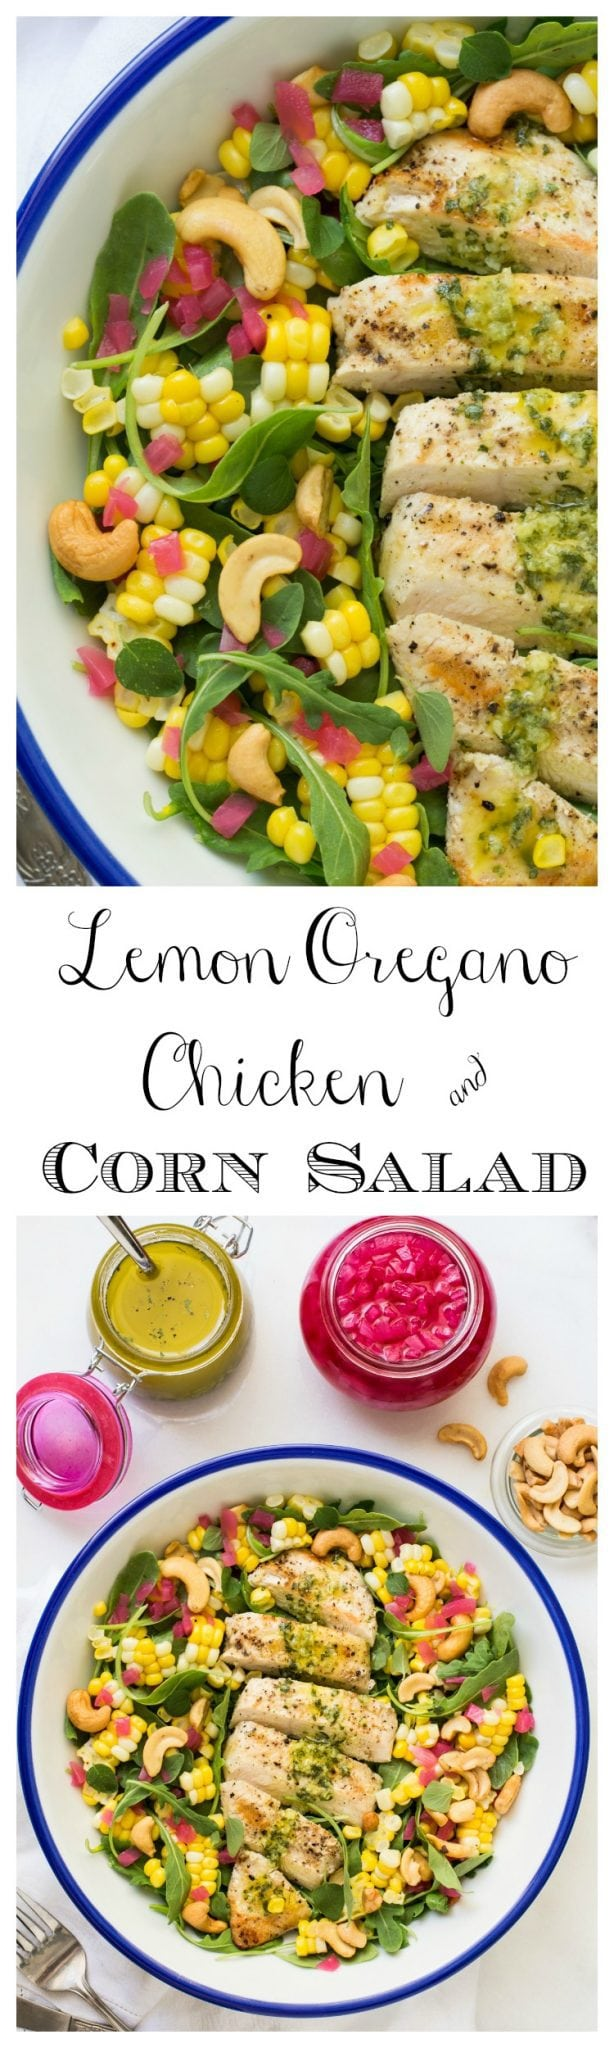 Lemon Oregano Chicken and Corn Salad - a delicious, vibrant, healthy salad that's loaded with fresh flavor and works well in any season!